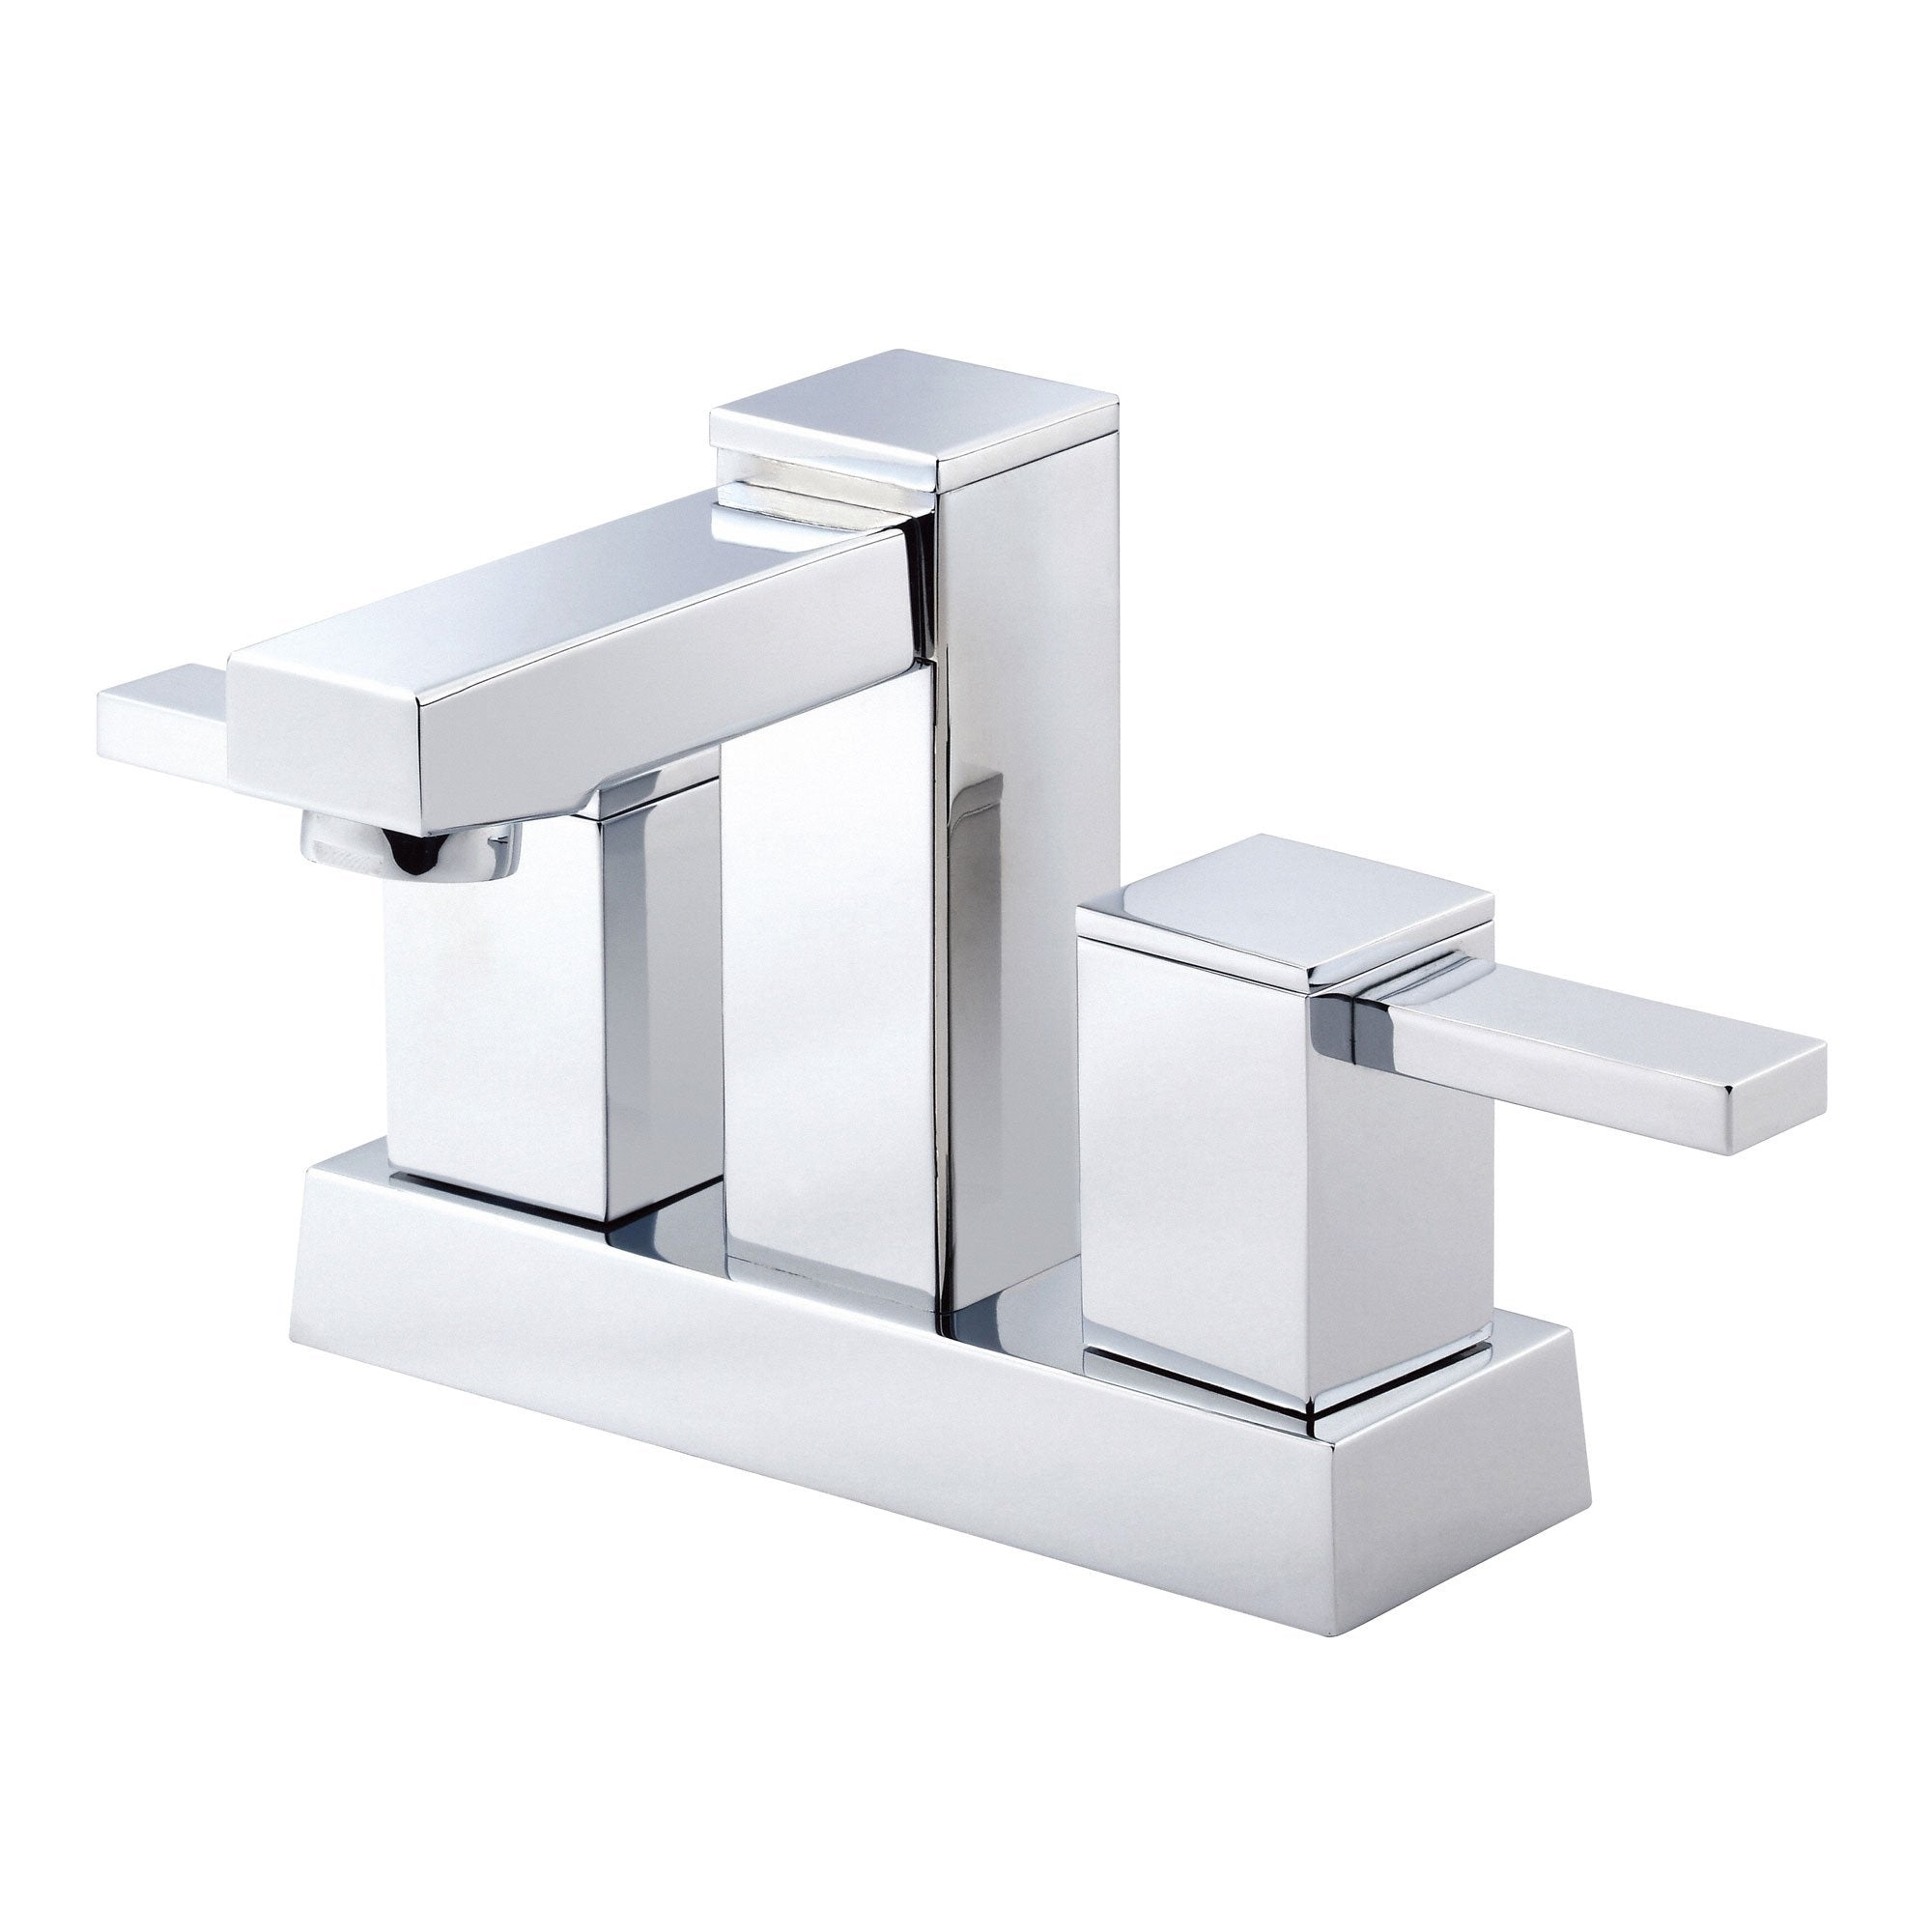 "Danze Reef Chrome Square Modern 4"" Centerset Bathroom Faucet w/ Pop-up Drain"